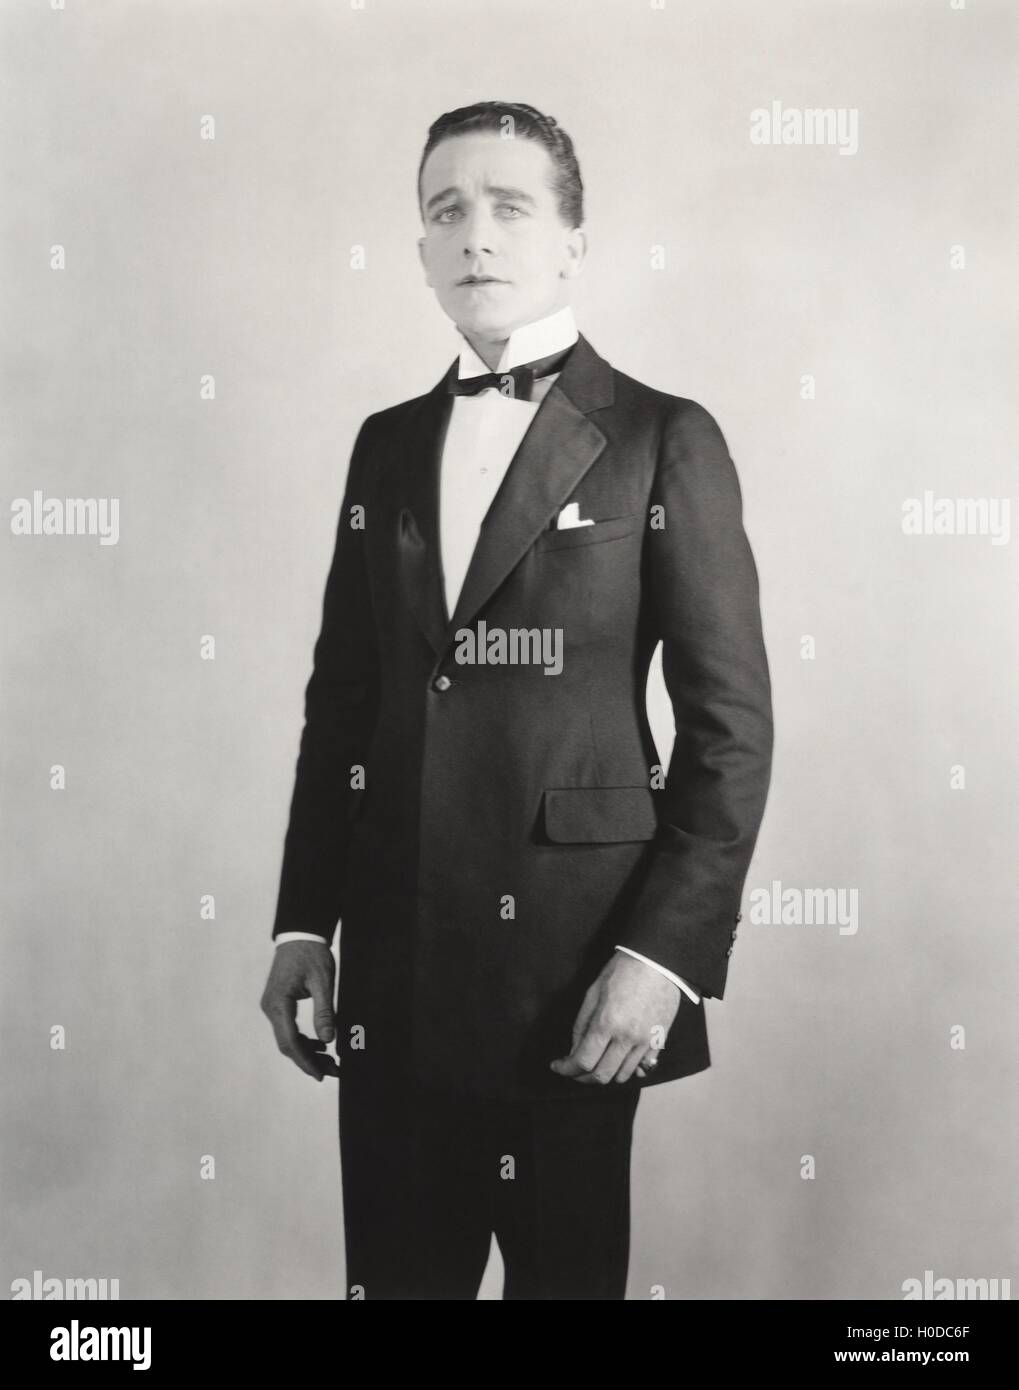 Man in formal white collar and tuxedo Stock Photo